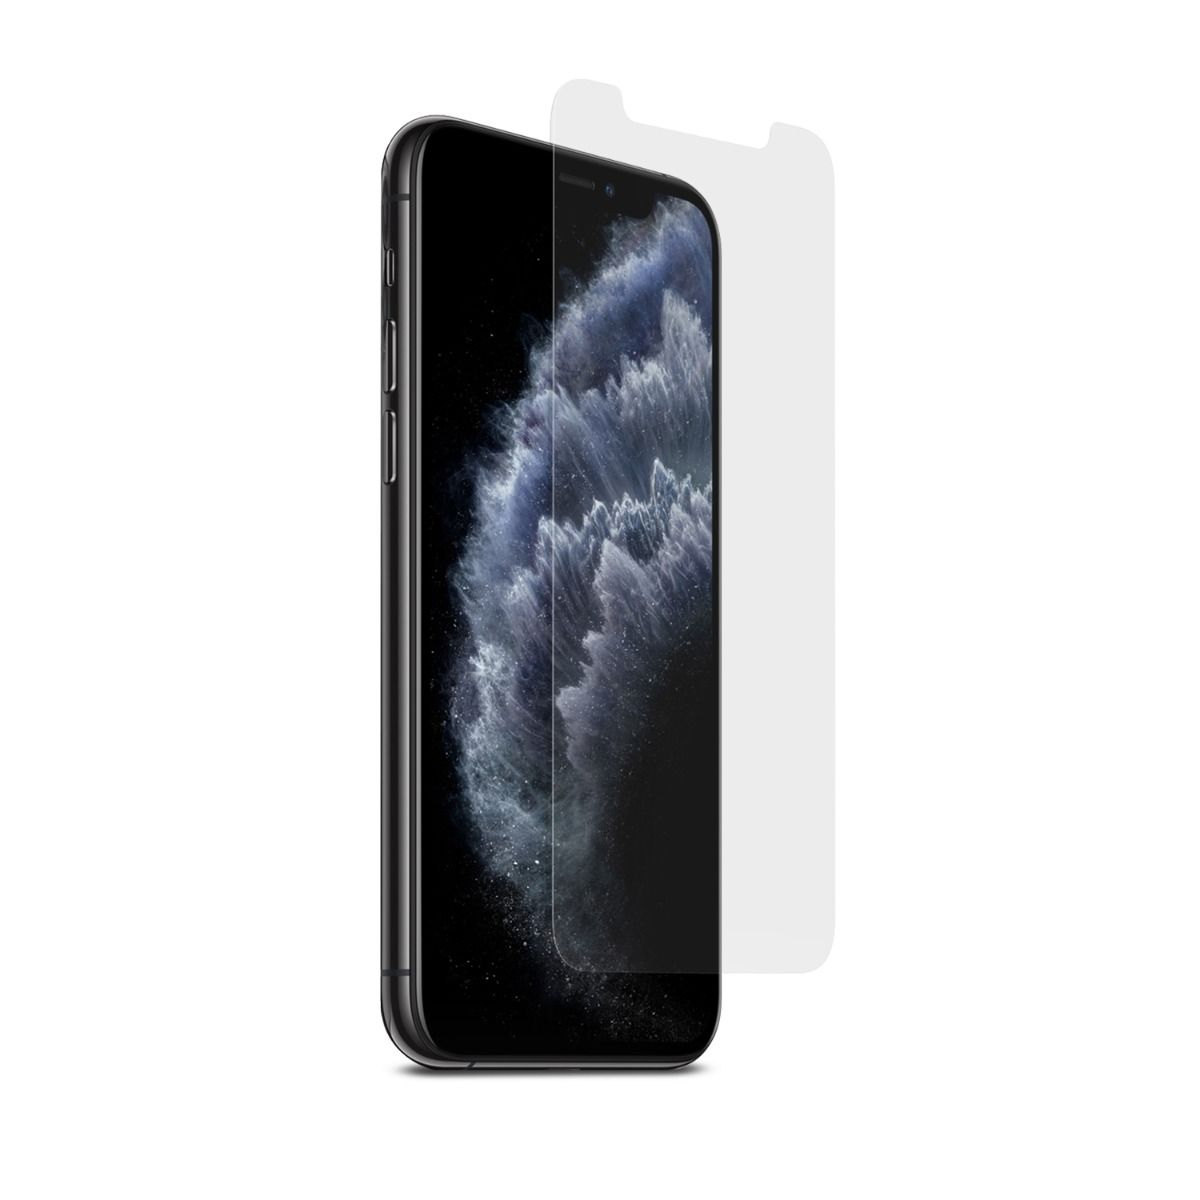 Apple iPhone 11 Pro High-Definition Glass Screen Protector with Alignment Tray